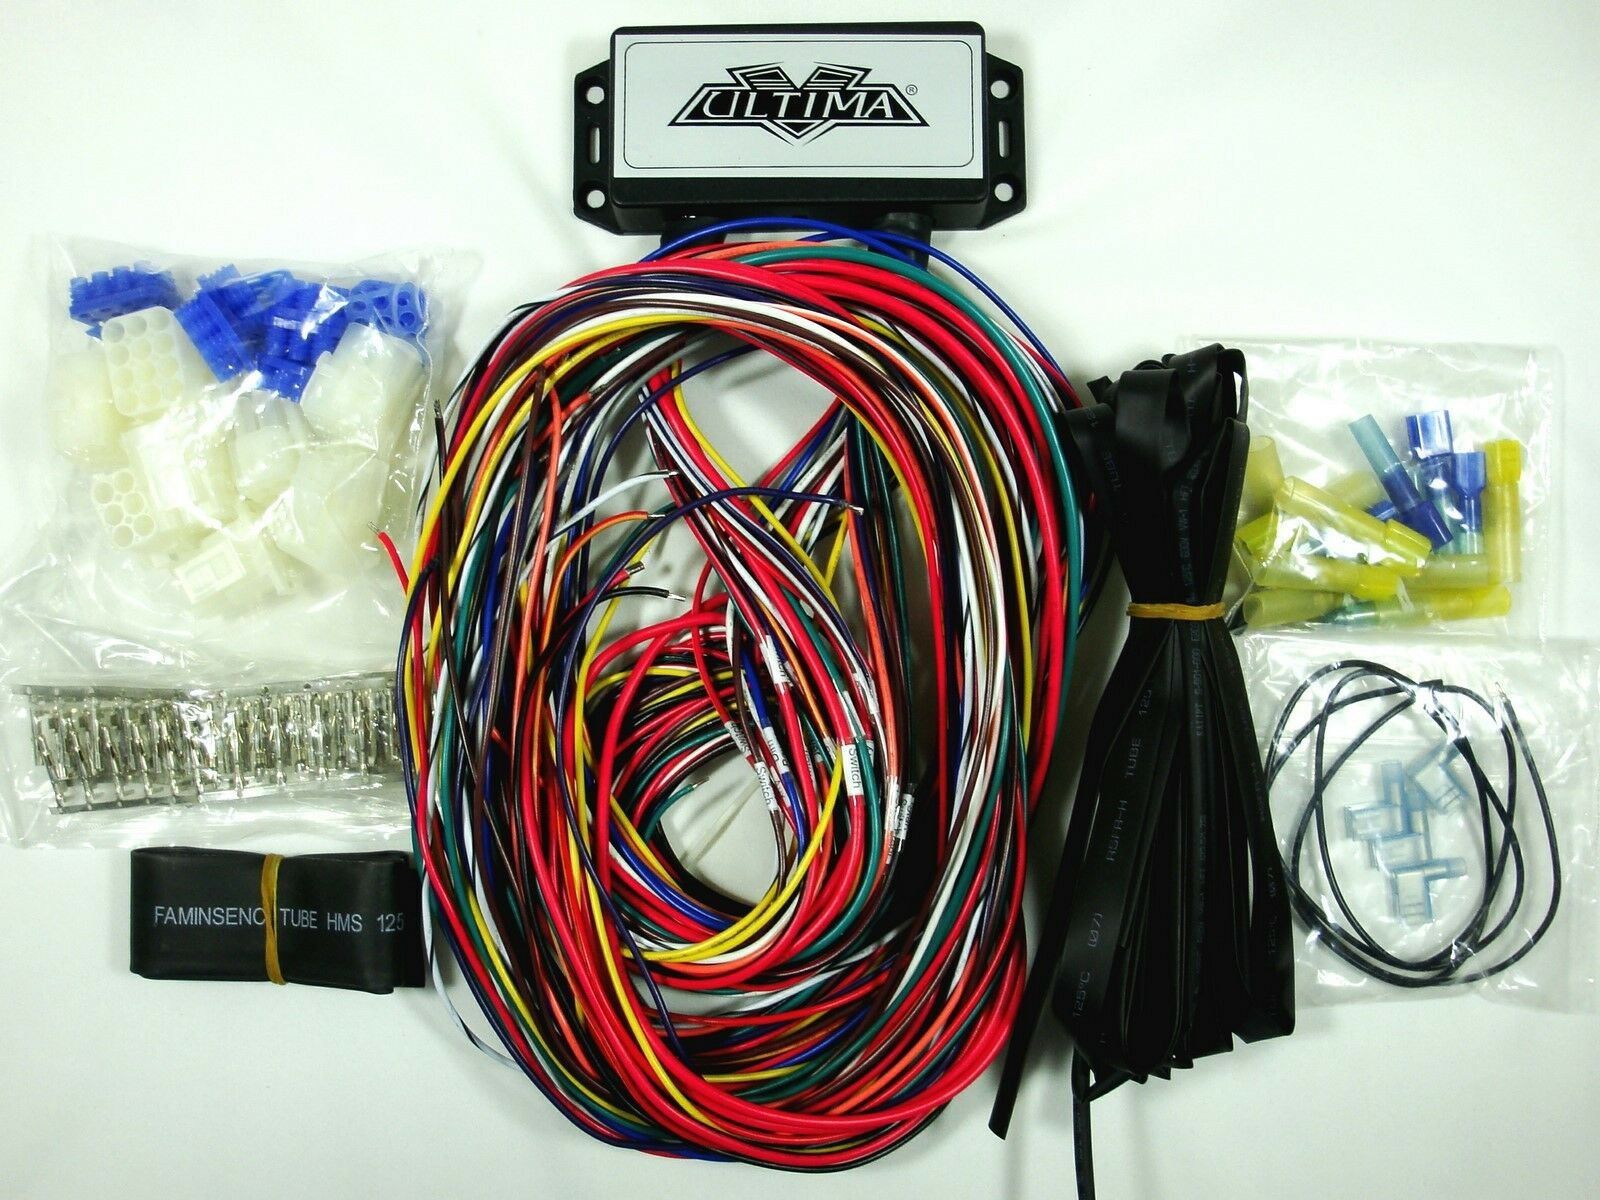 Ultima Wiring Harness Compact on ultima harness 18 530, ultima motor wiring diagram, ultima electronic wiring system,